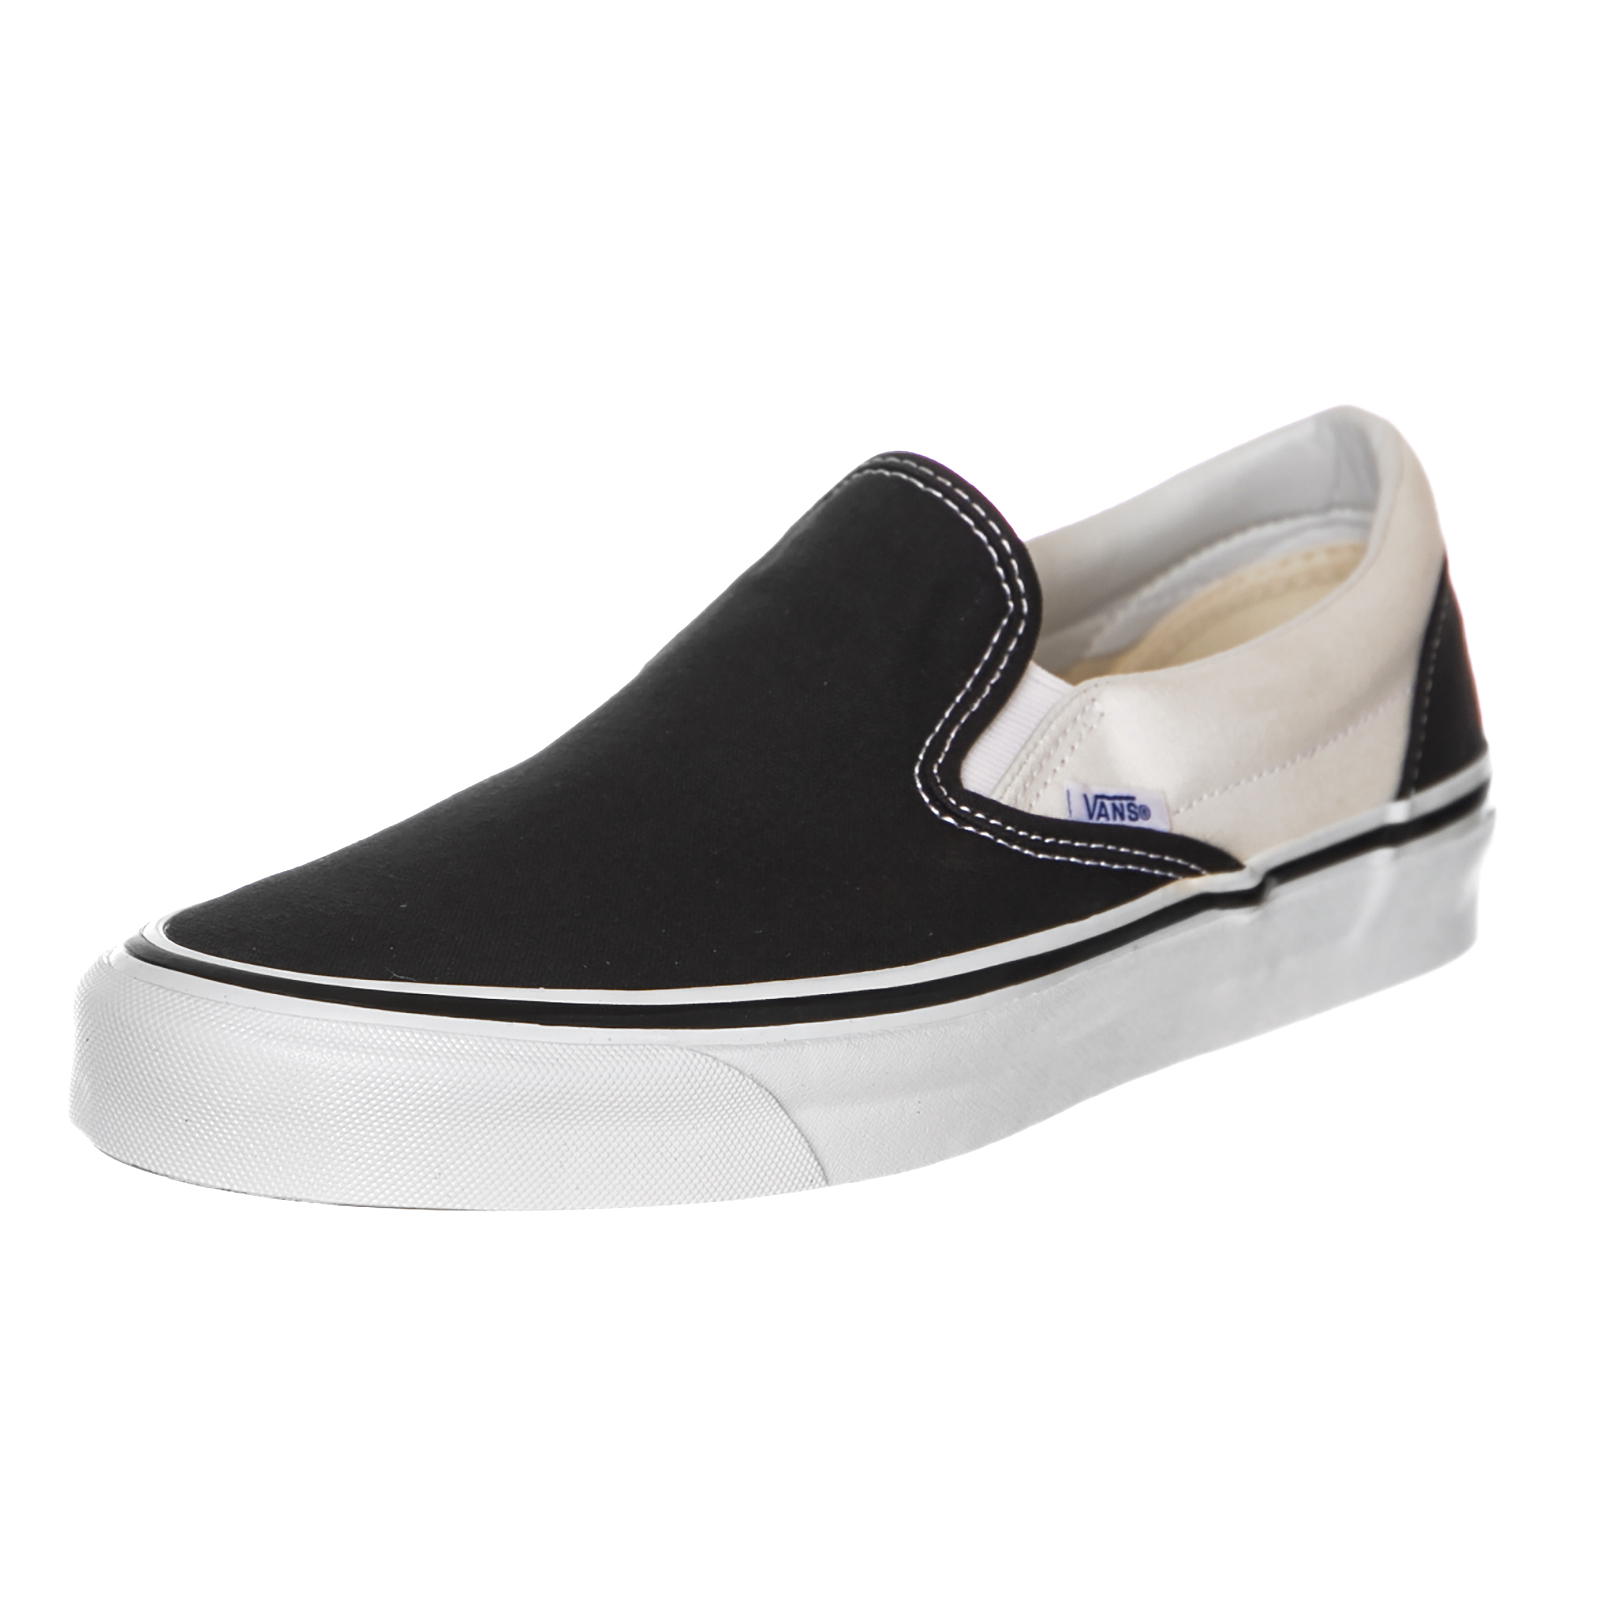 Vans Sneakers Classic Slip-On 9 (Anaheim Factory) Black   White Black 1 of  6Only 1 available ... c242eca83